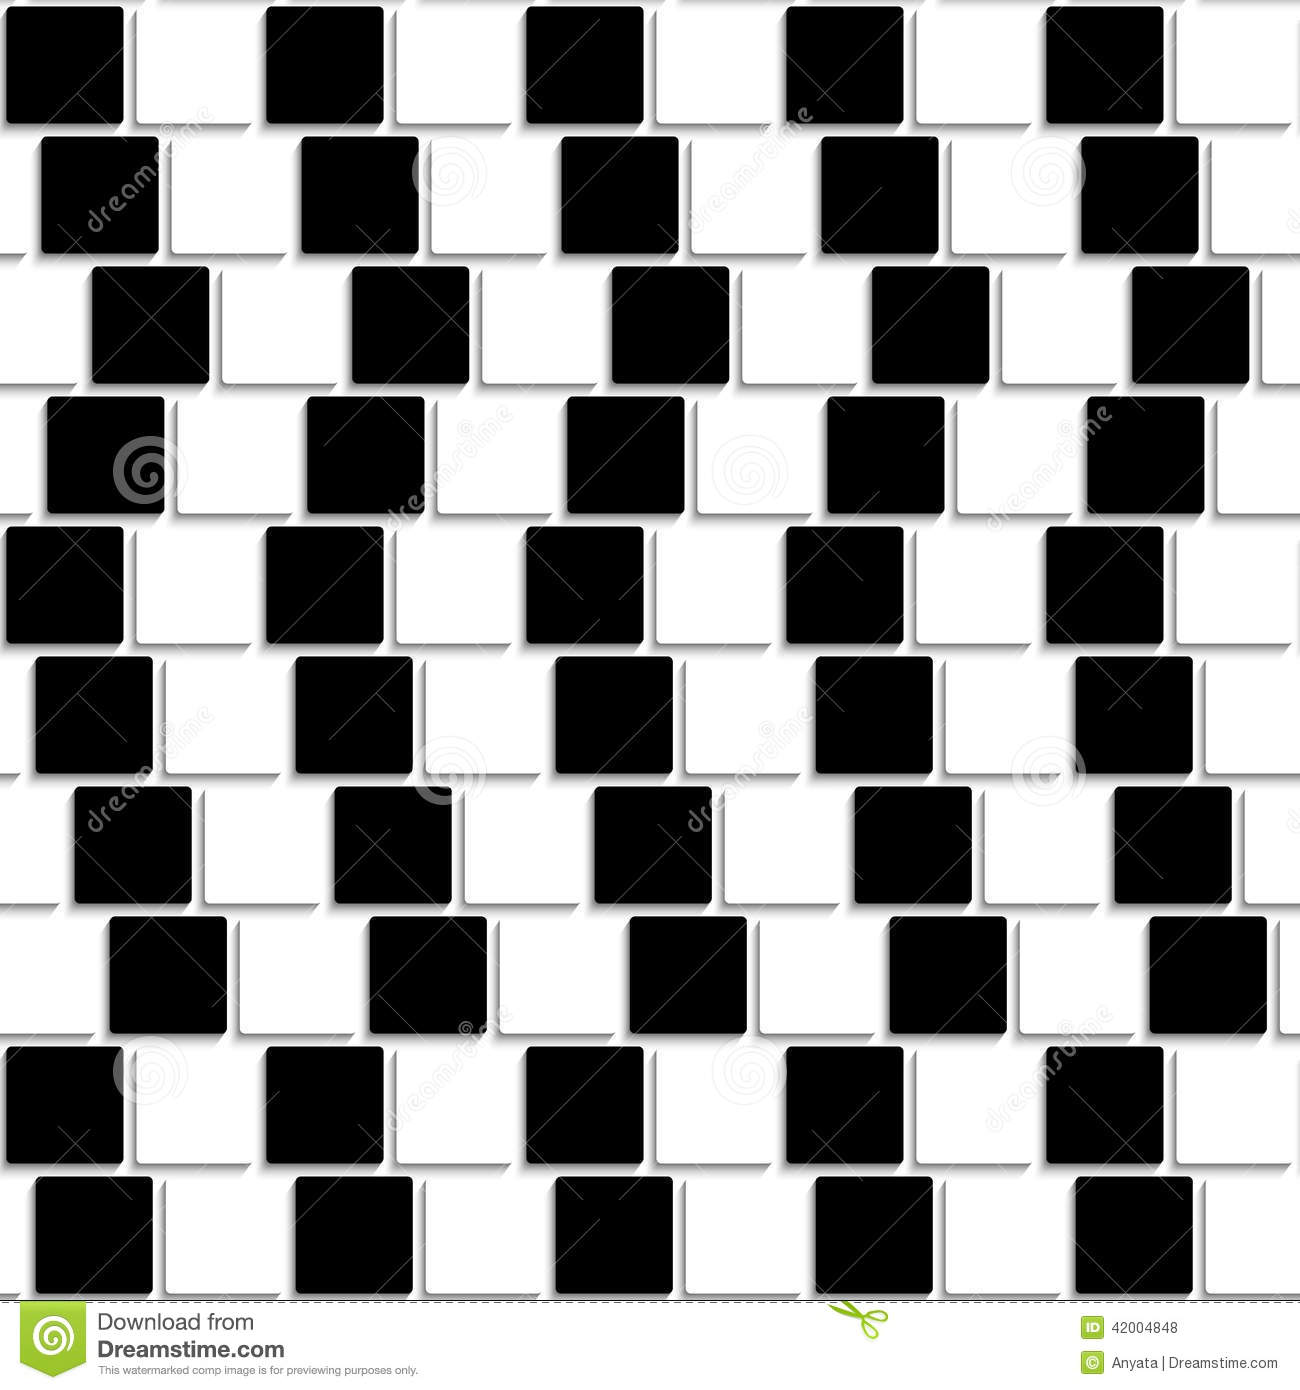 Black And White Tiles Black And White Tile Tile Bravely I Love The Black And White